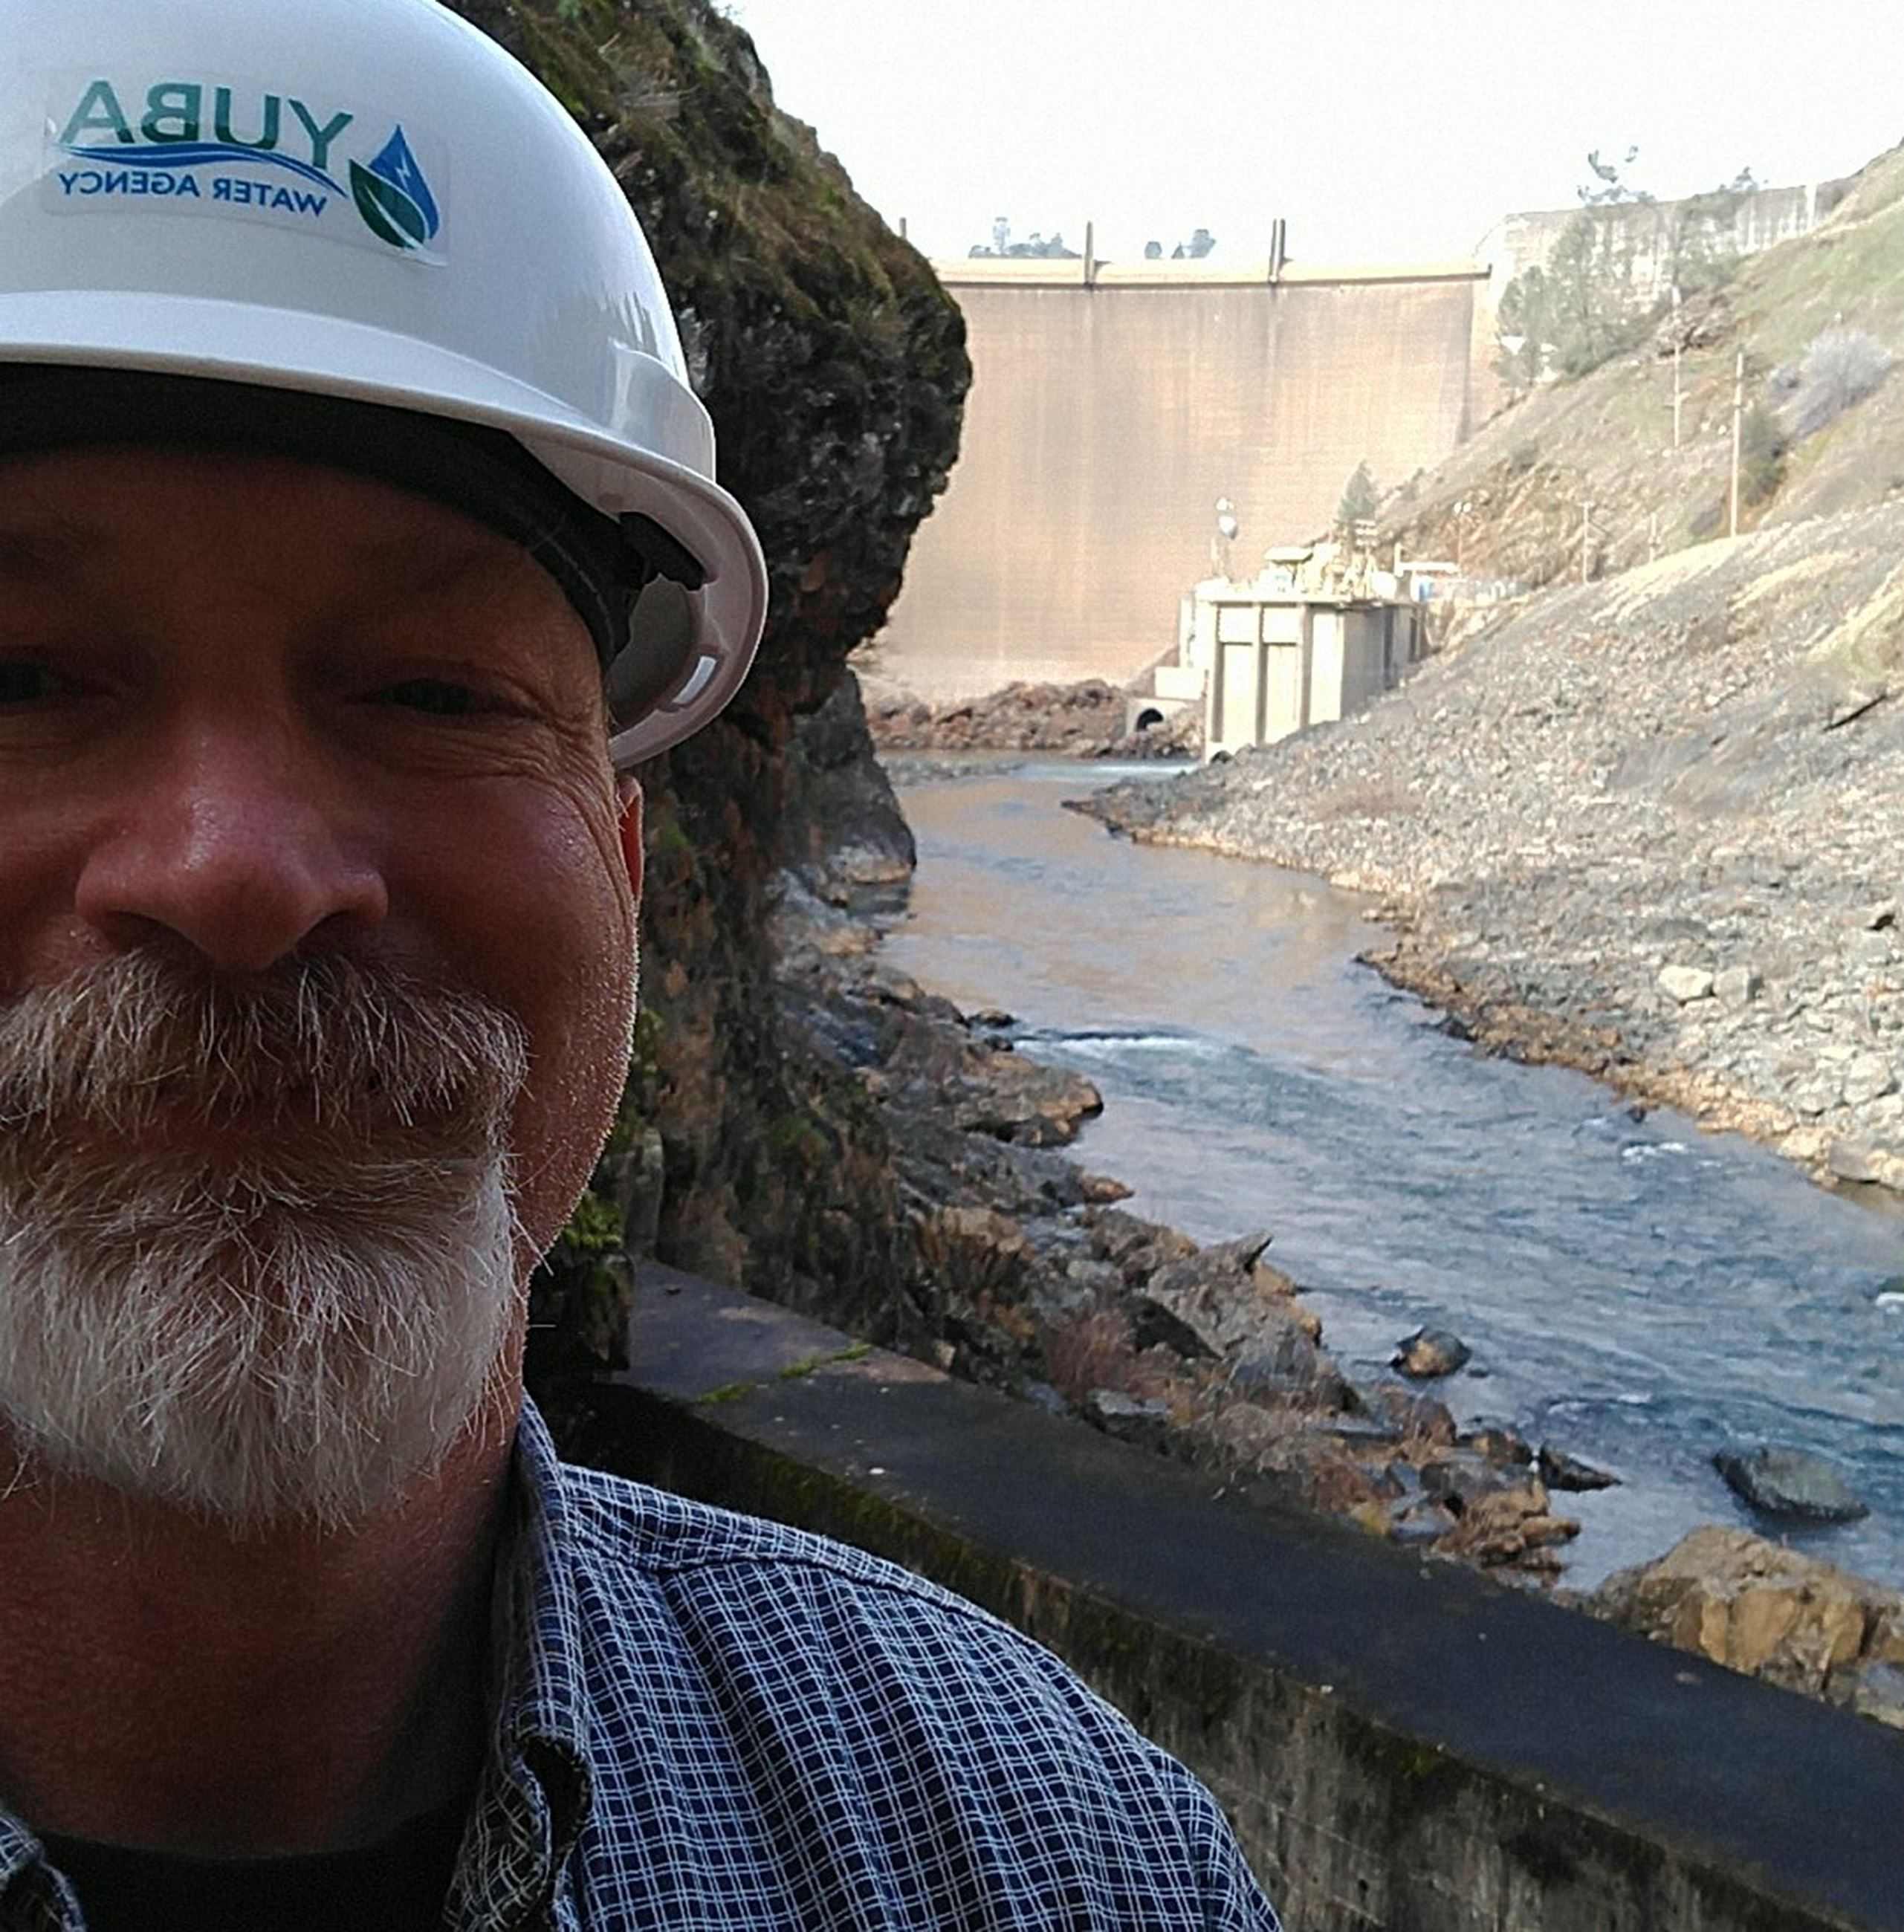 Yuba Water Agency employee Jason Newton stands with his hard hat on next to the Yuba River with Engl